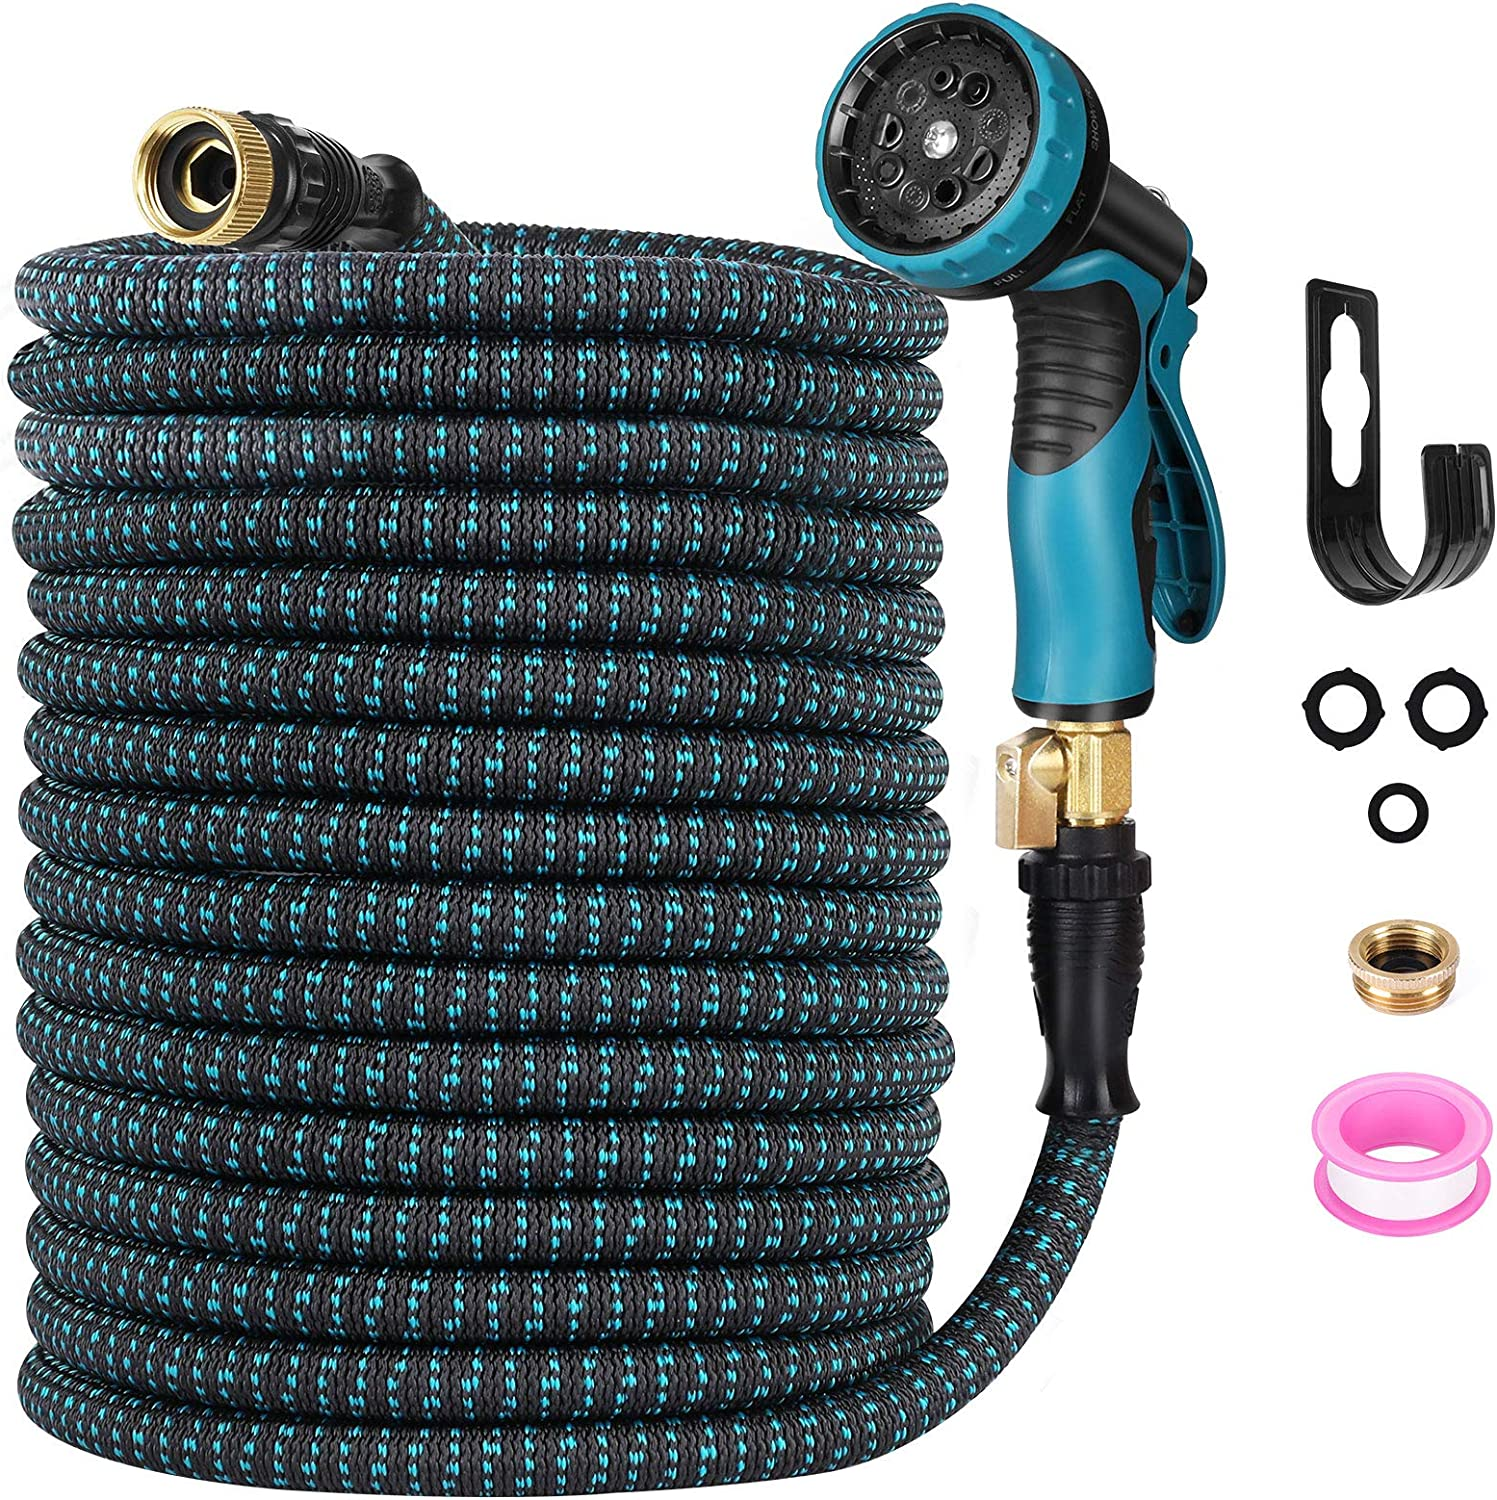 Expendable Garden Hose, Homga 100FT Garden Water Hoses with 9 Function Nozzle, 3-Layers Latex, Heavy Duty Kink Free Water Hose with 3/4